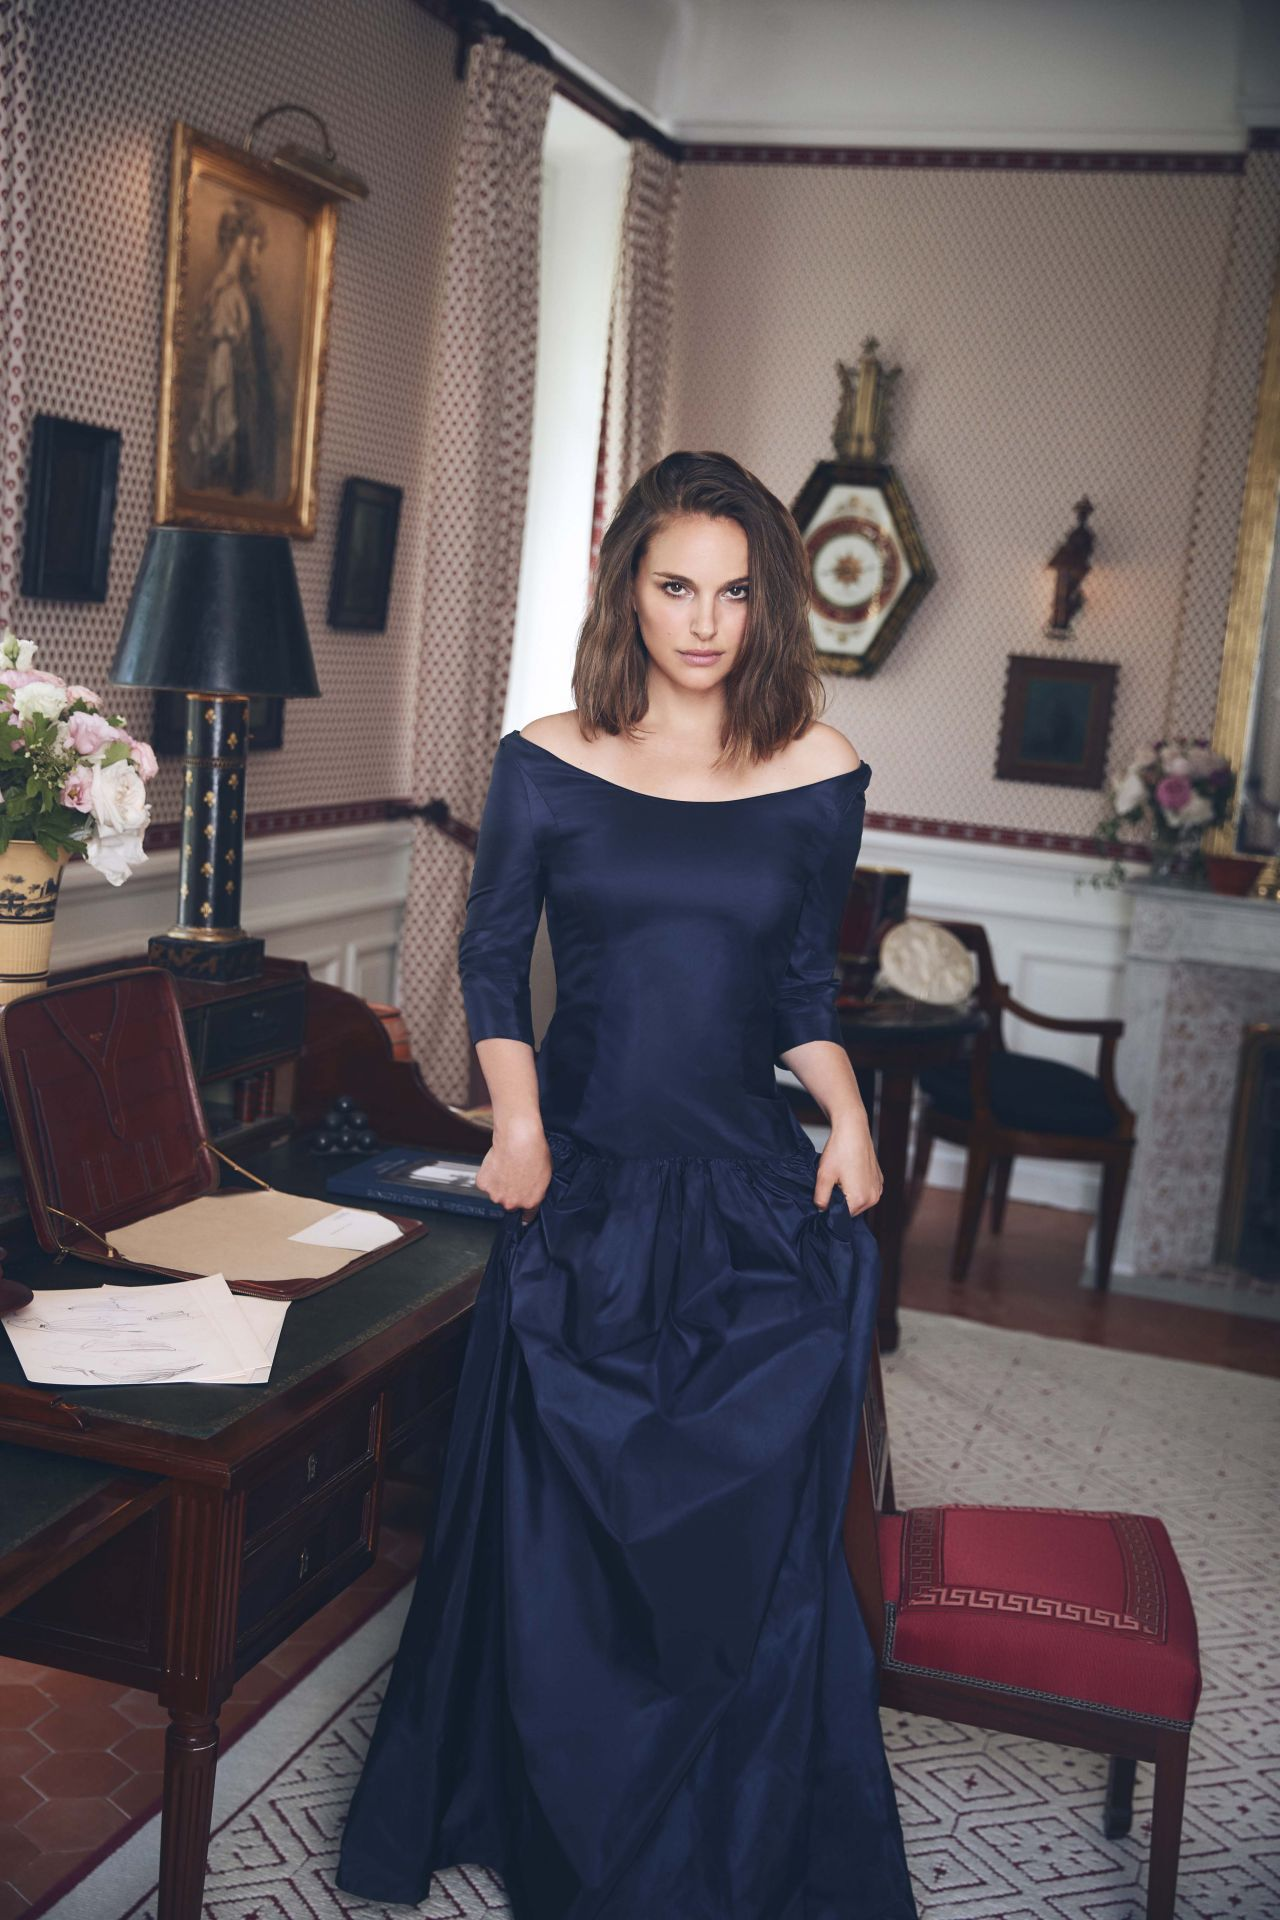 Natalie Portman - Photoshoot for Vanity Fair Italia #39 ... натали портман